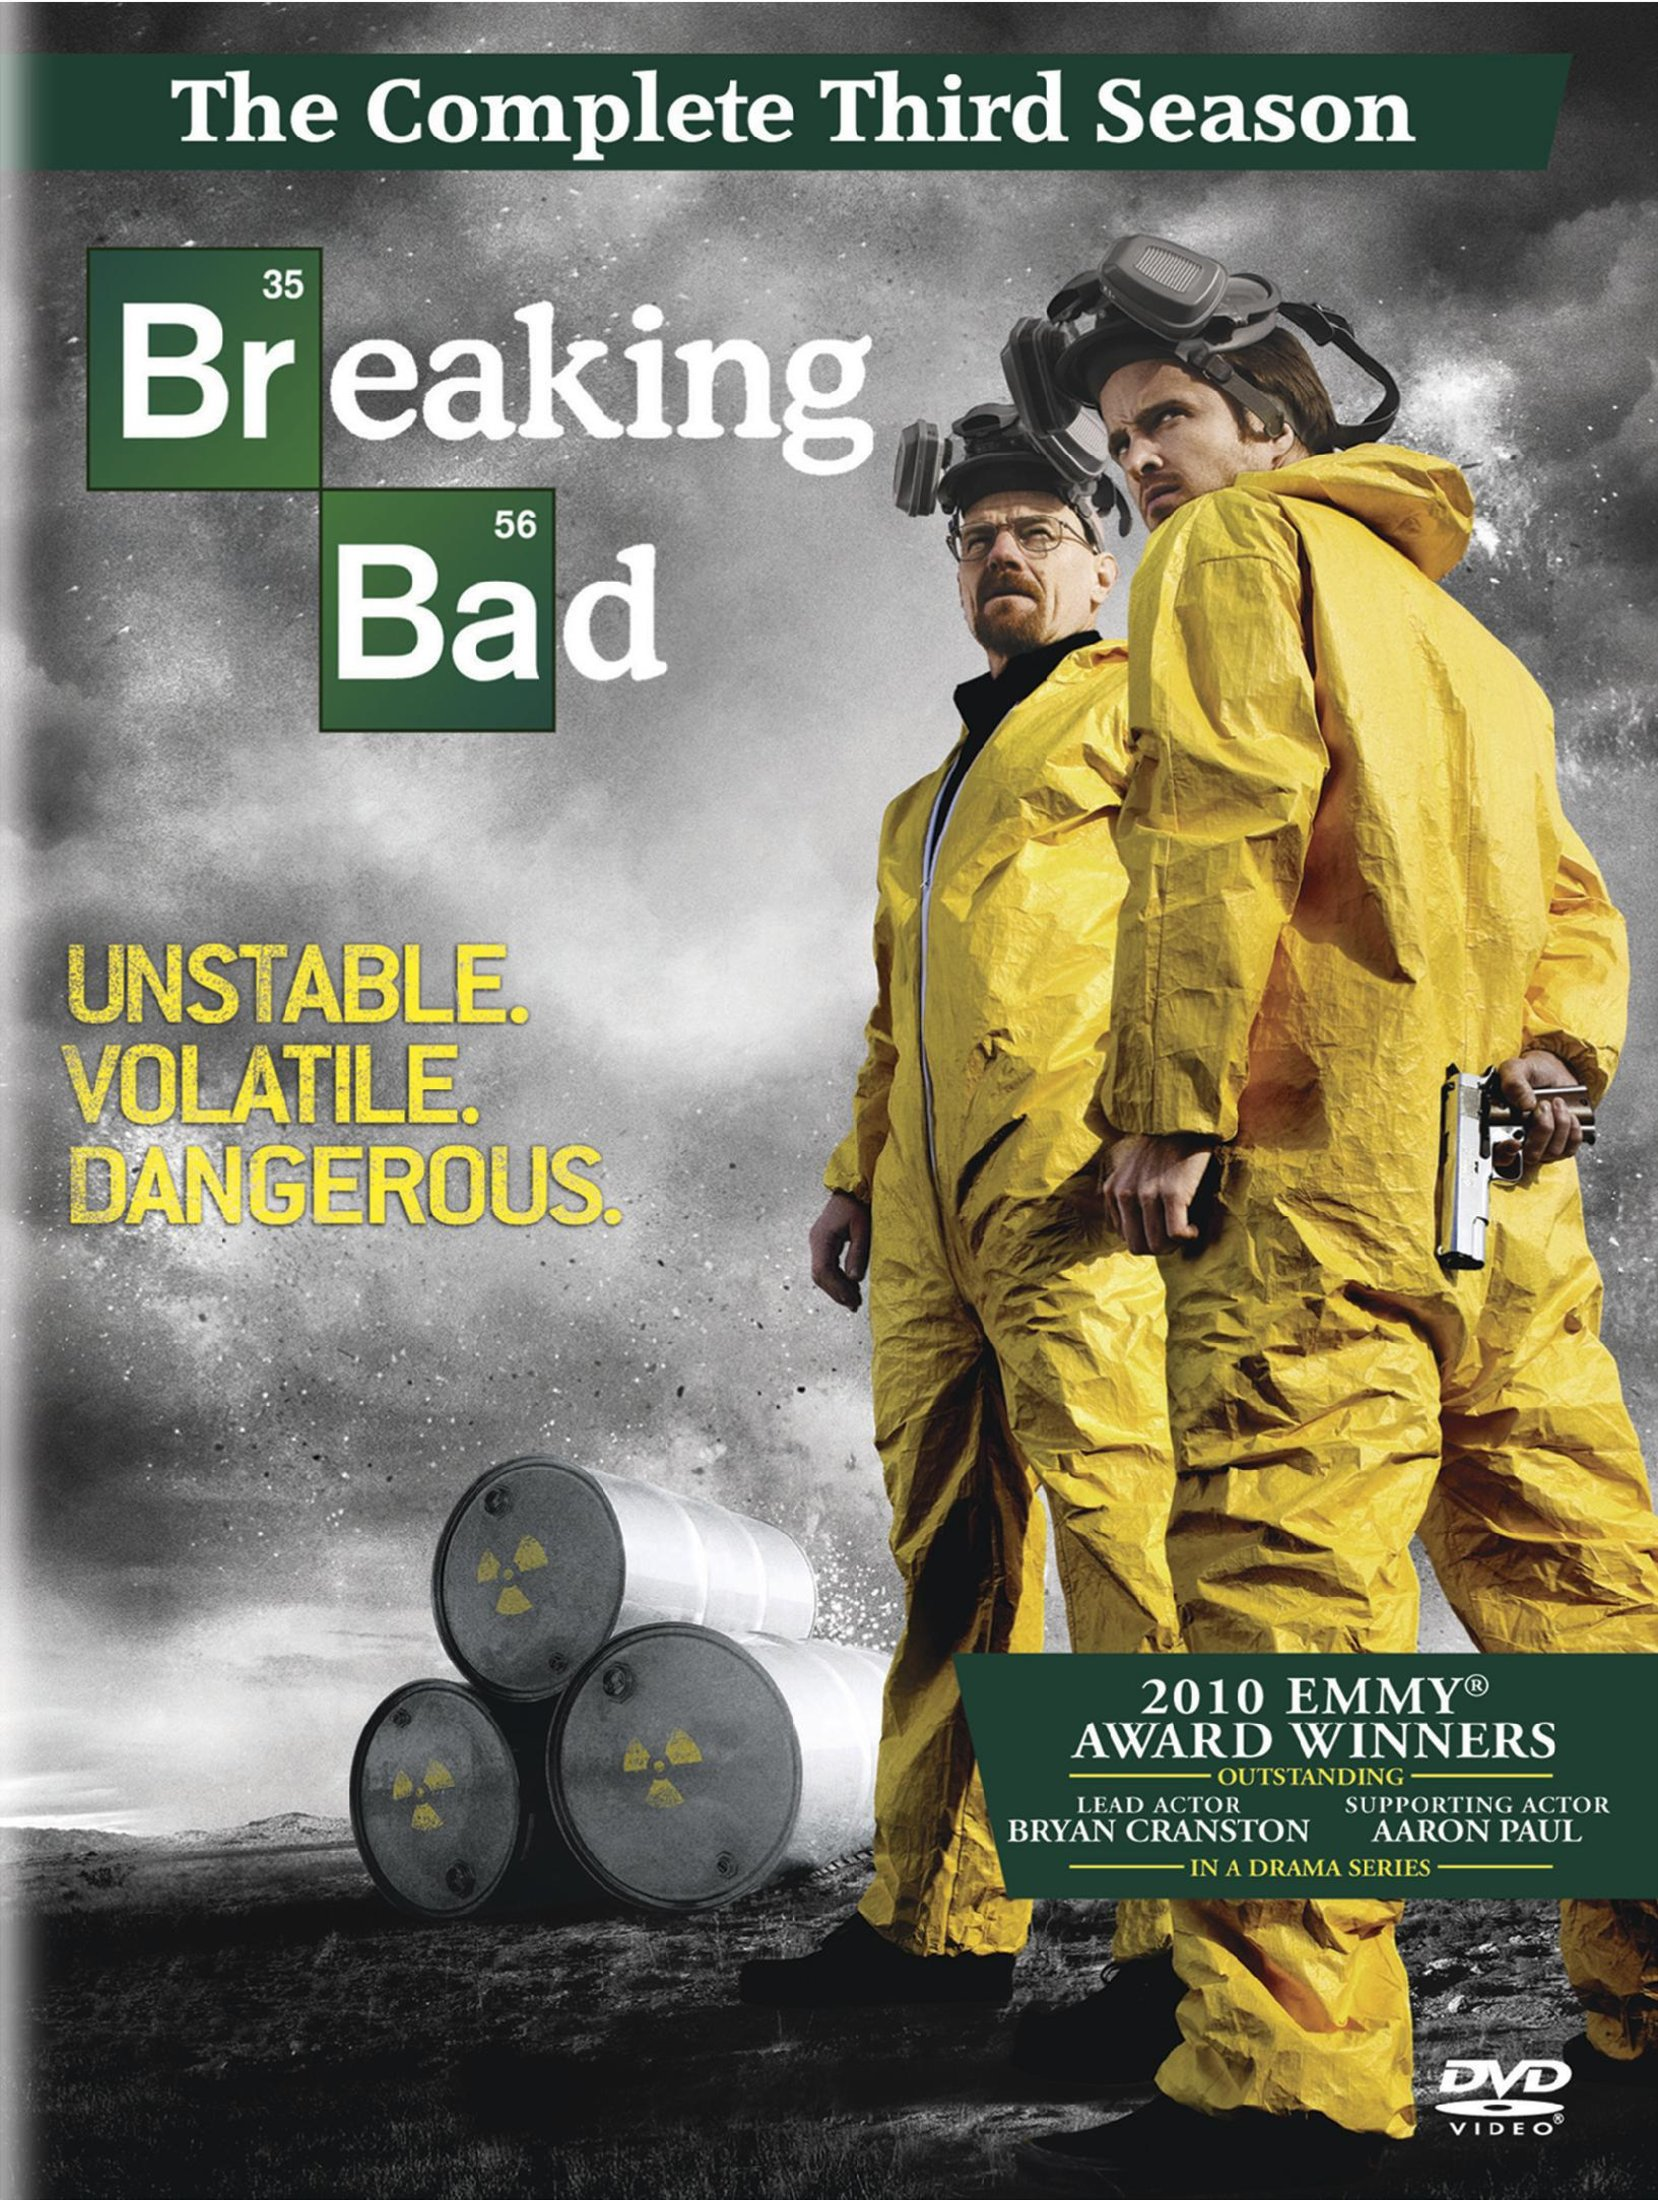 Win a 'Breaking Bad' Season 3 DVD